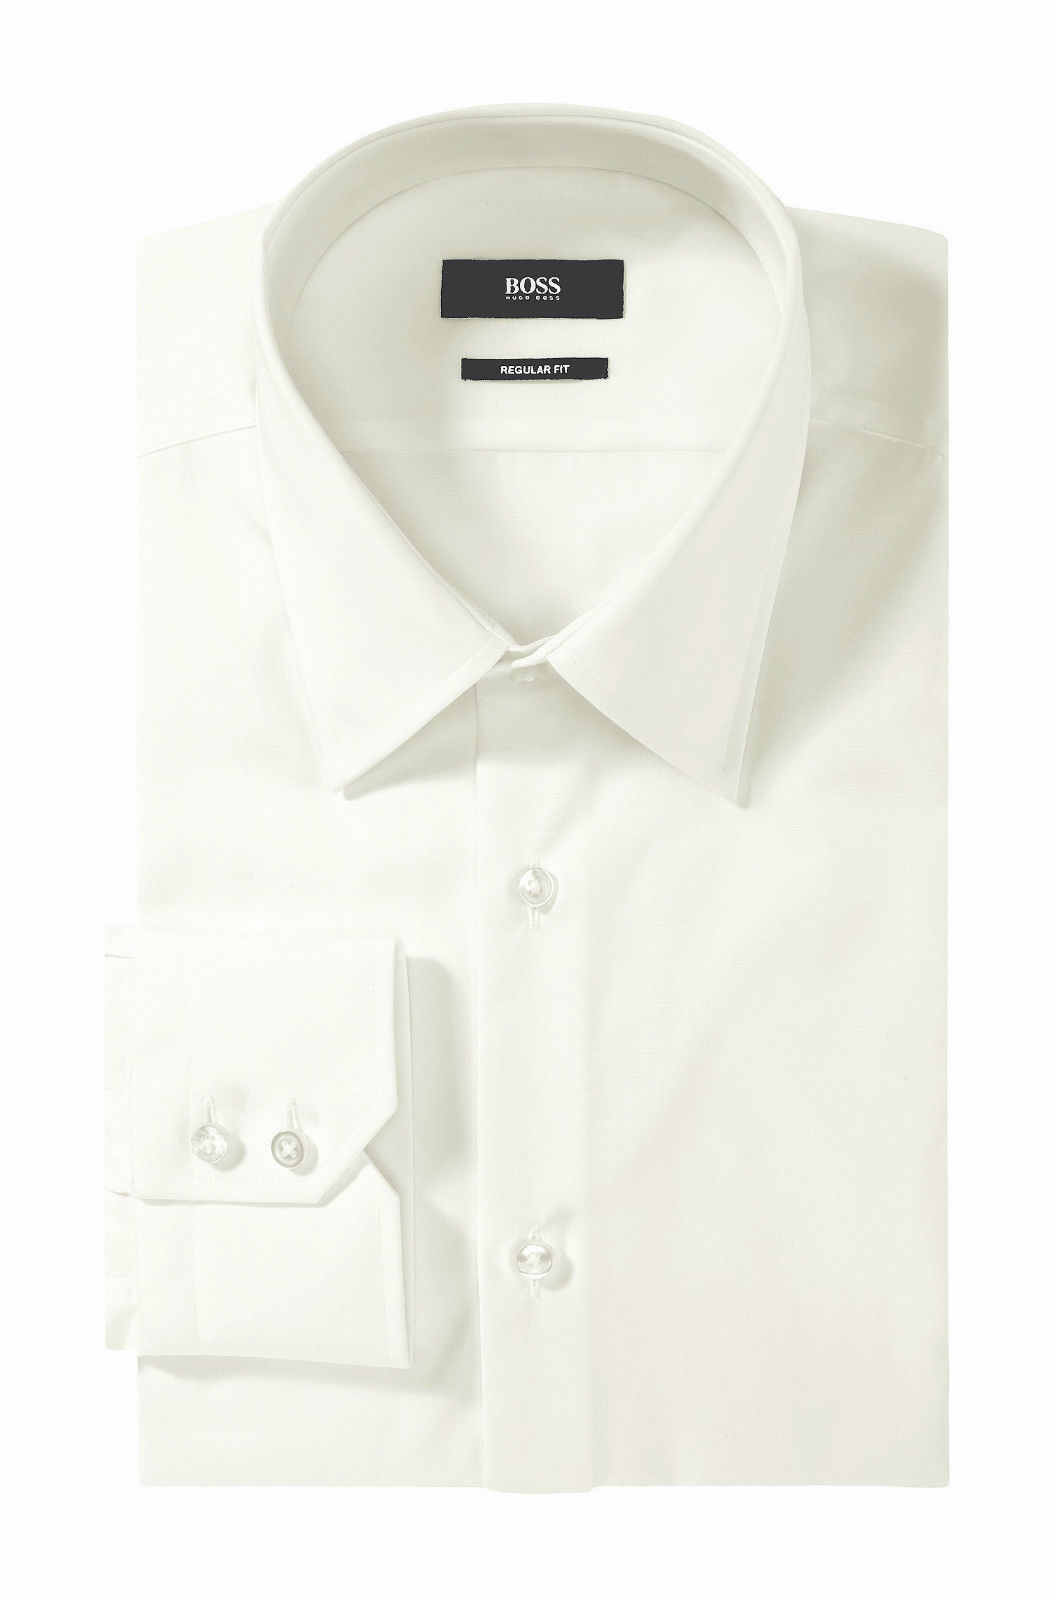 HUGO BOSS CAMICIA UOMO MOD ENZO Camicia business Regular-Fit Facile stiro BIANCO